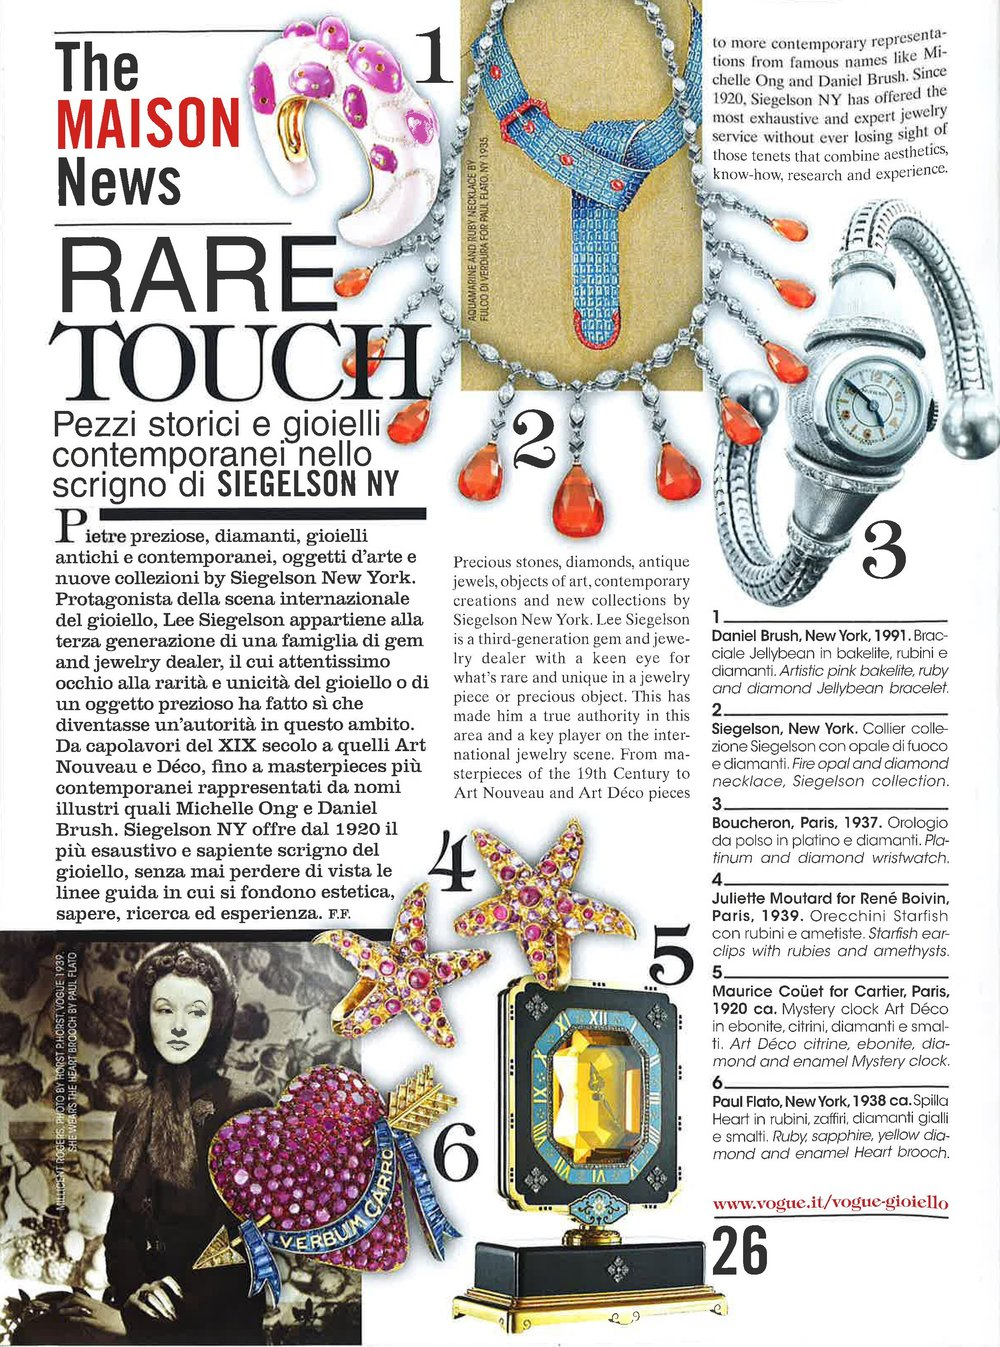 Featured pieces: Bracelet from Artistic Pink Bakelite, Ruby, and Diamond Jellybean Suite of Bracelet and Earrings by Daniel Brush, New York, 1991; necklace from Fire Opal and Diamond Suite by Siegelson, New York; drawing of The Cole Porter Necklace: An Aquamarine and Ruby Belt with a Buckle Necklace Designed by Fulco, Duke of Verdura, for Paul Flato, New York, circa 1935; Platinum and Diamond Wristwatch by Boucheron, Paris, circa 1937; Pair of Ruby and Amethyst Starfish Ear Clips Designed by Juliette Moutard for René Boivin, Paris, 1939; The Millicent Rogers Heart: A Ruby, Sapphire, Yellow Diamond, and Enamel Brooch by Paul Flato, New York, circa 1938; The Dodge Clock: An Art Deco Citrine, Ebonite, Diamond, and Enamel Mystery Clock by Maurice Coüet for Cartier, Paris, circa 1920